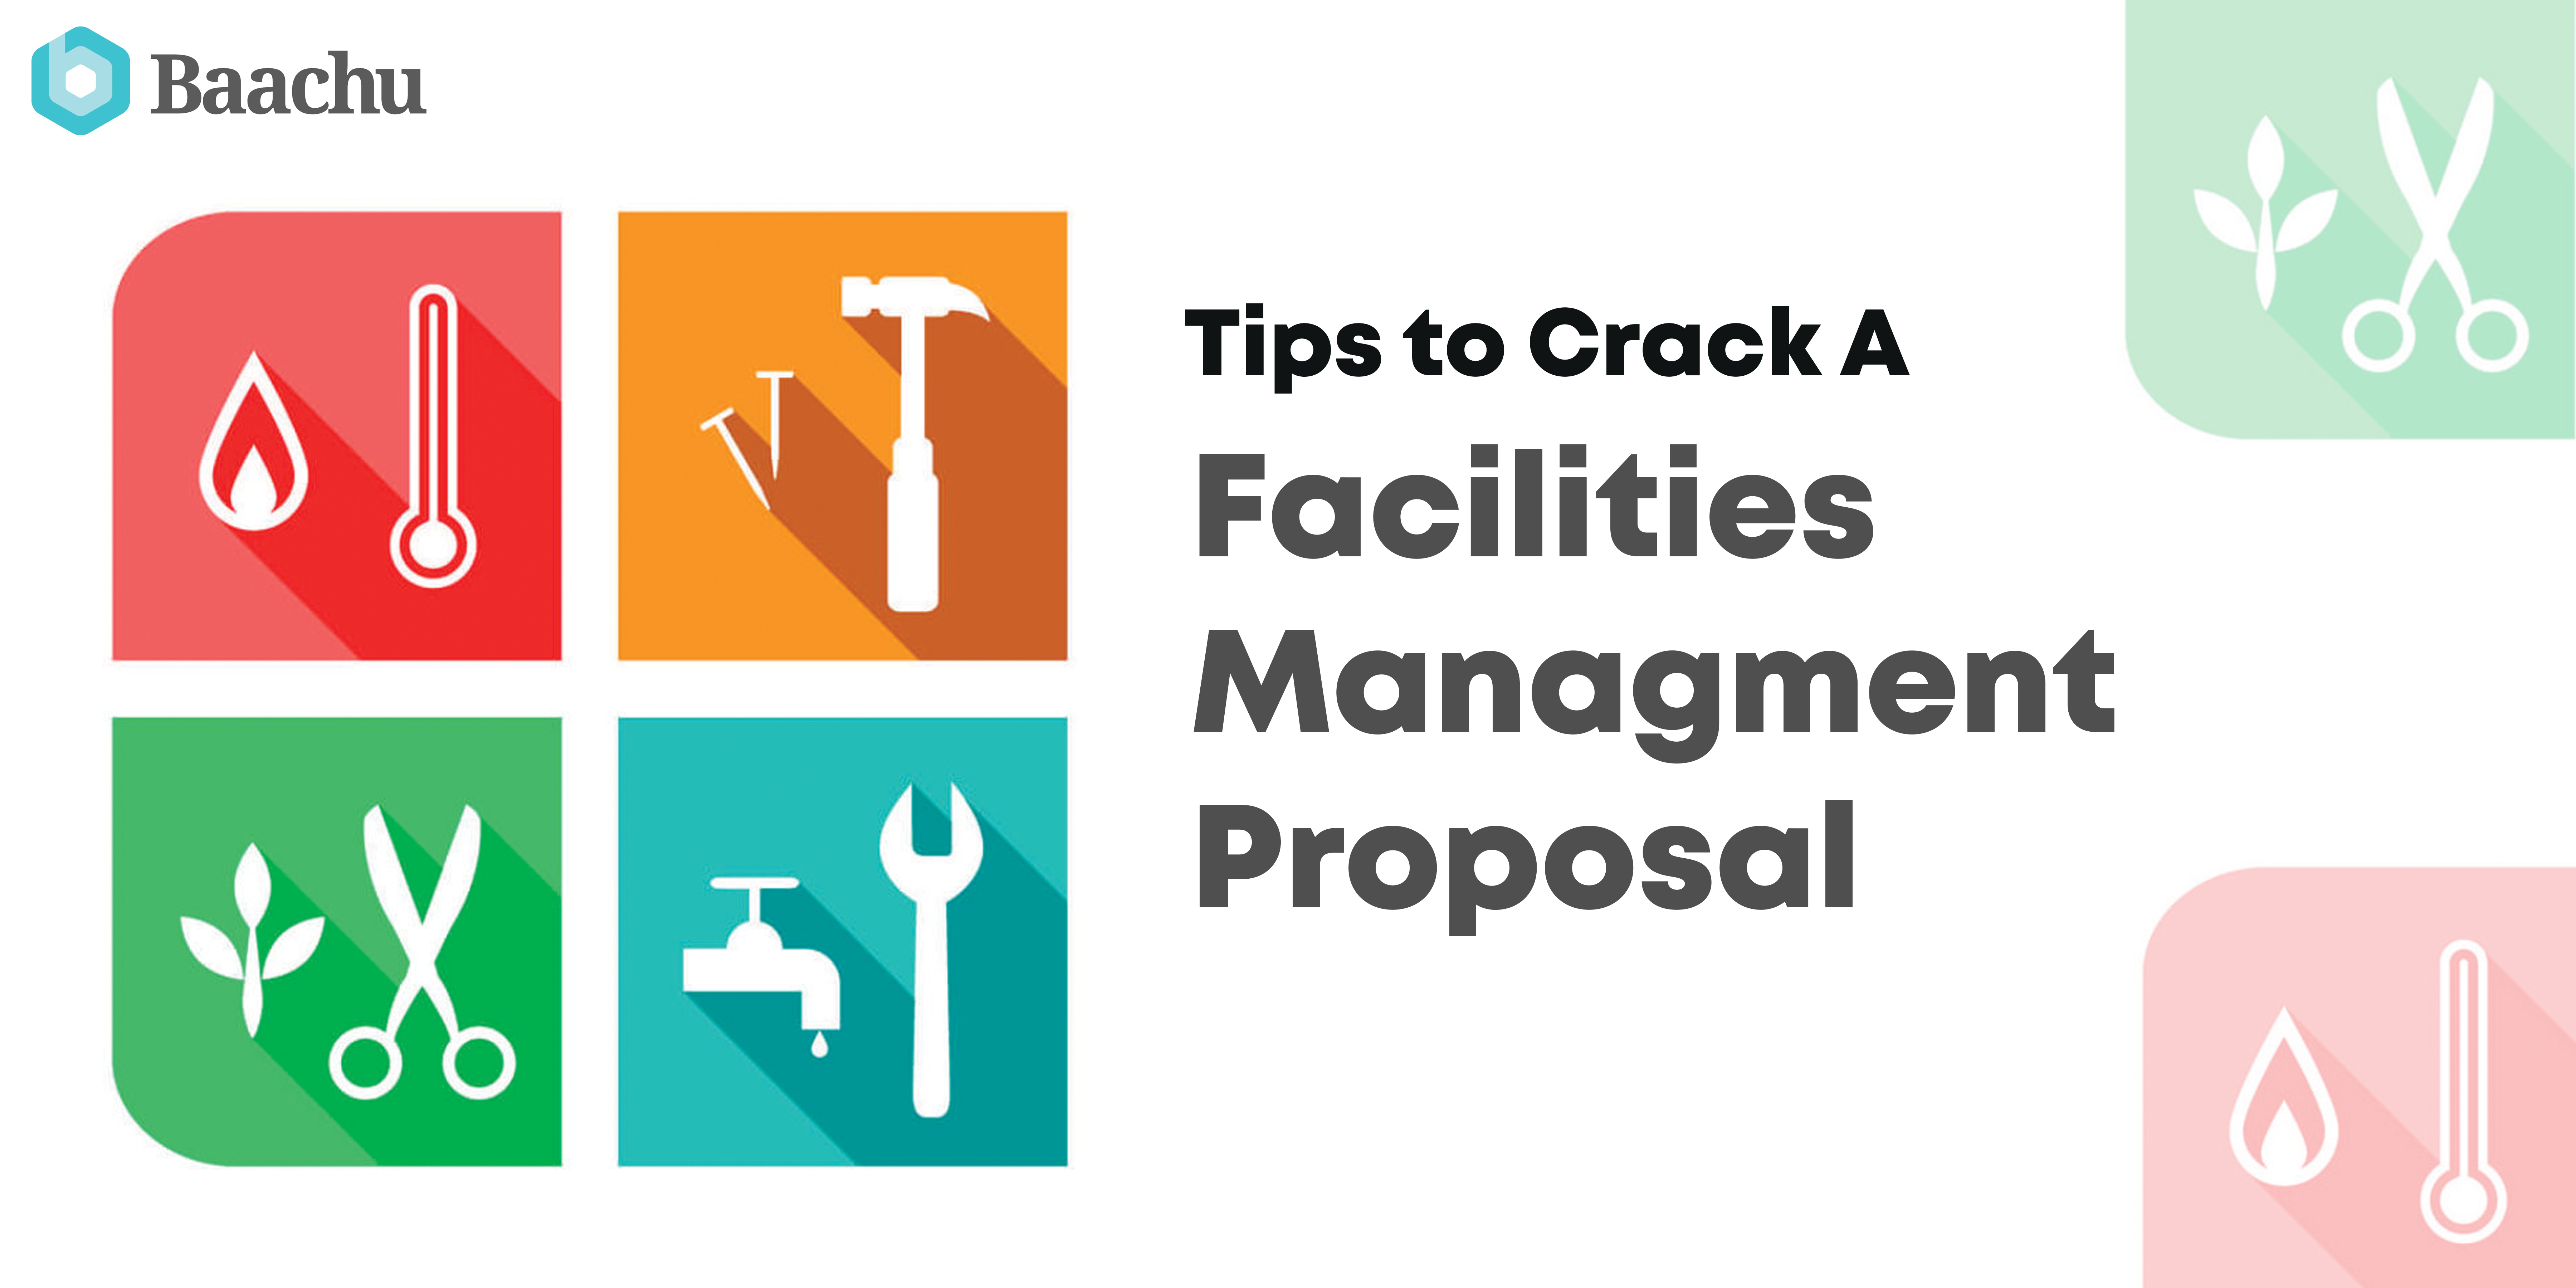 Tips To Crack A Facilities Management Proposal